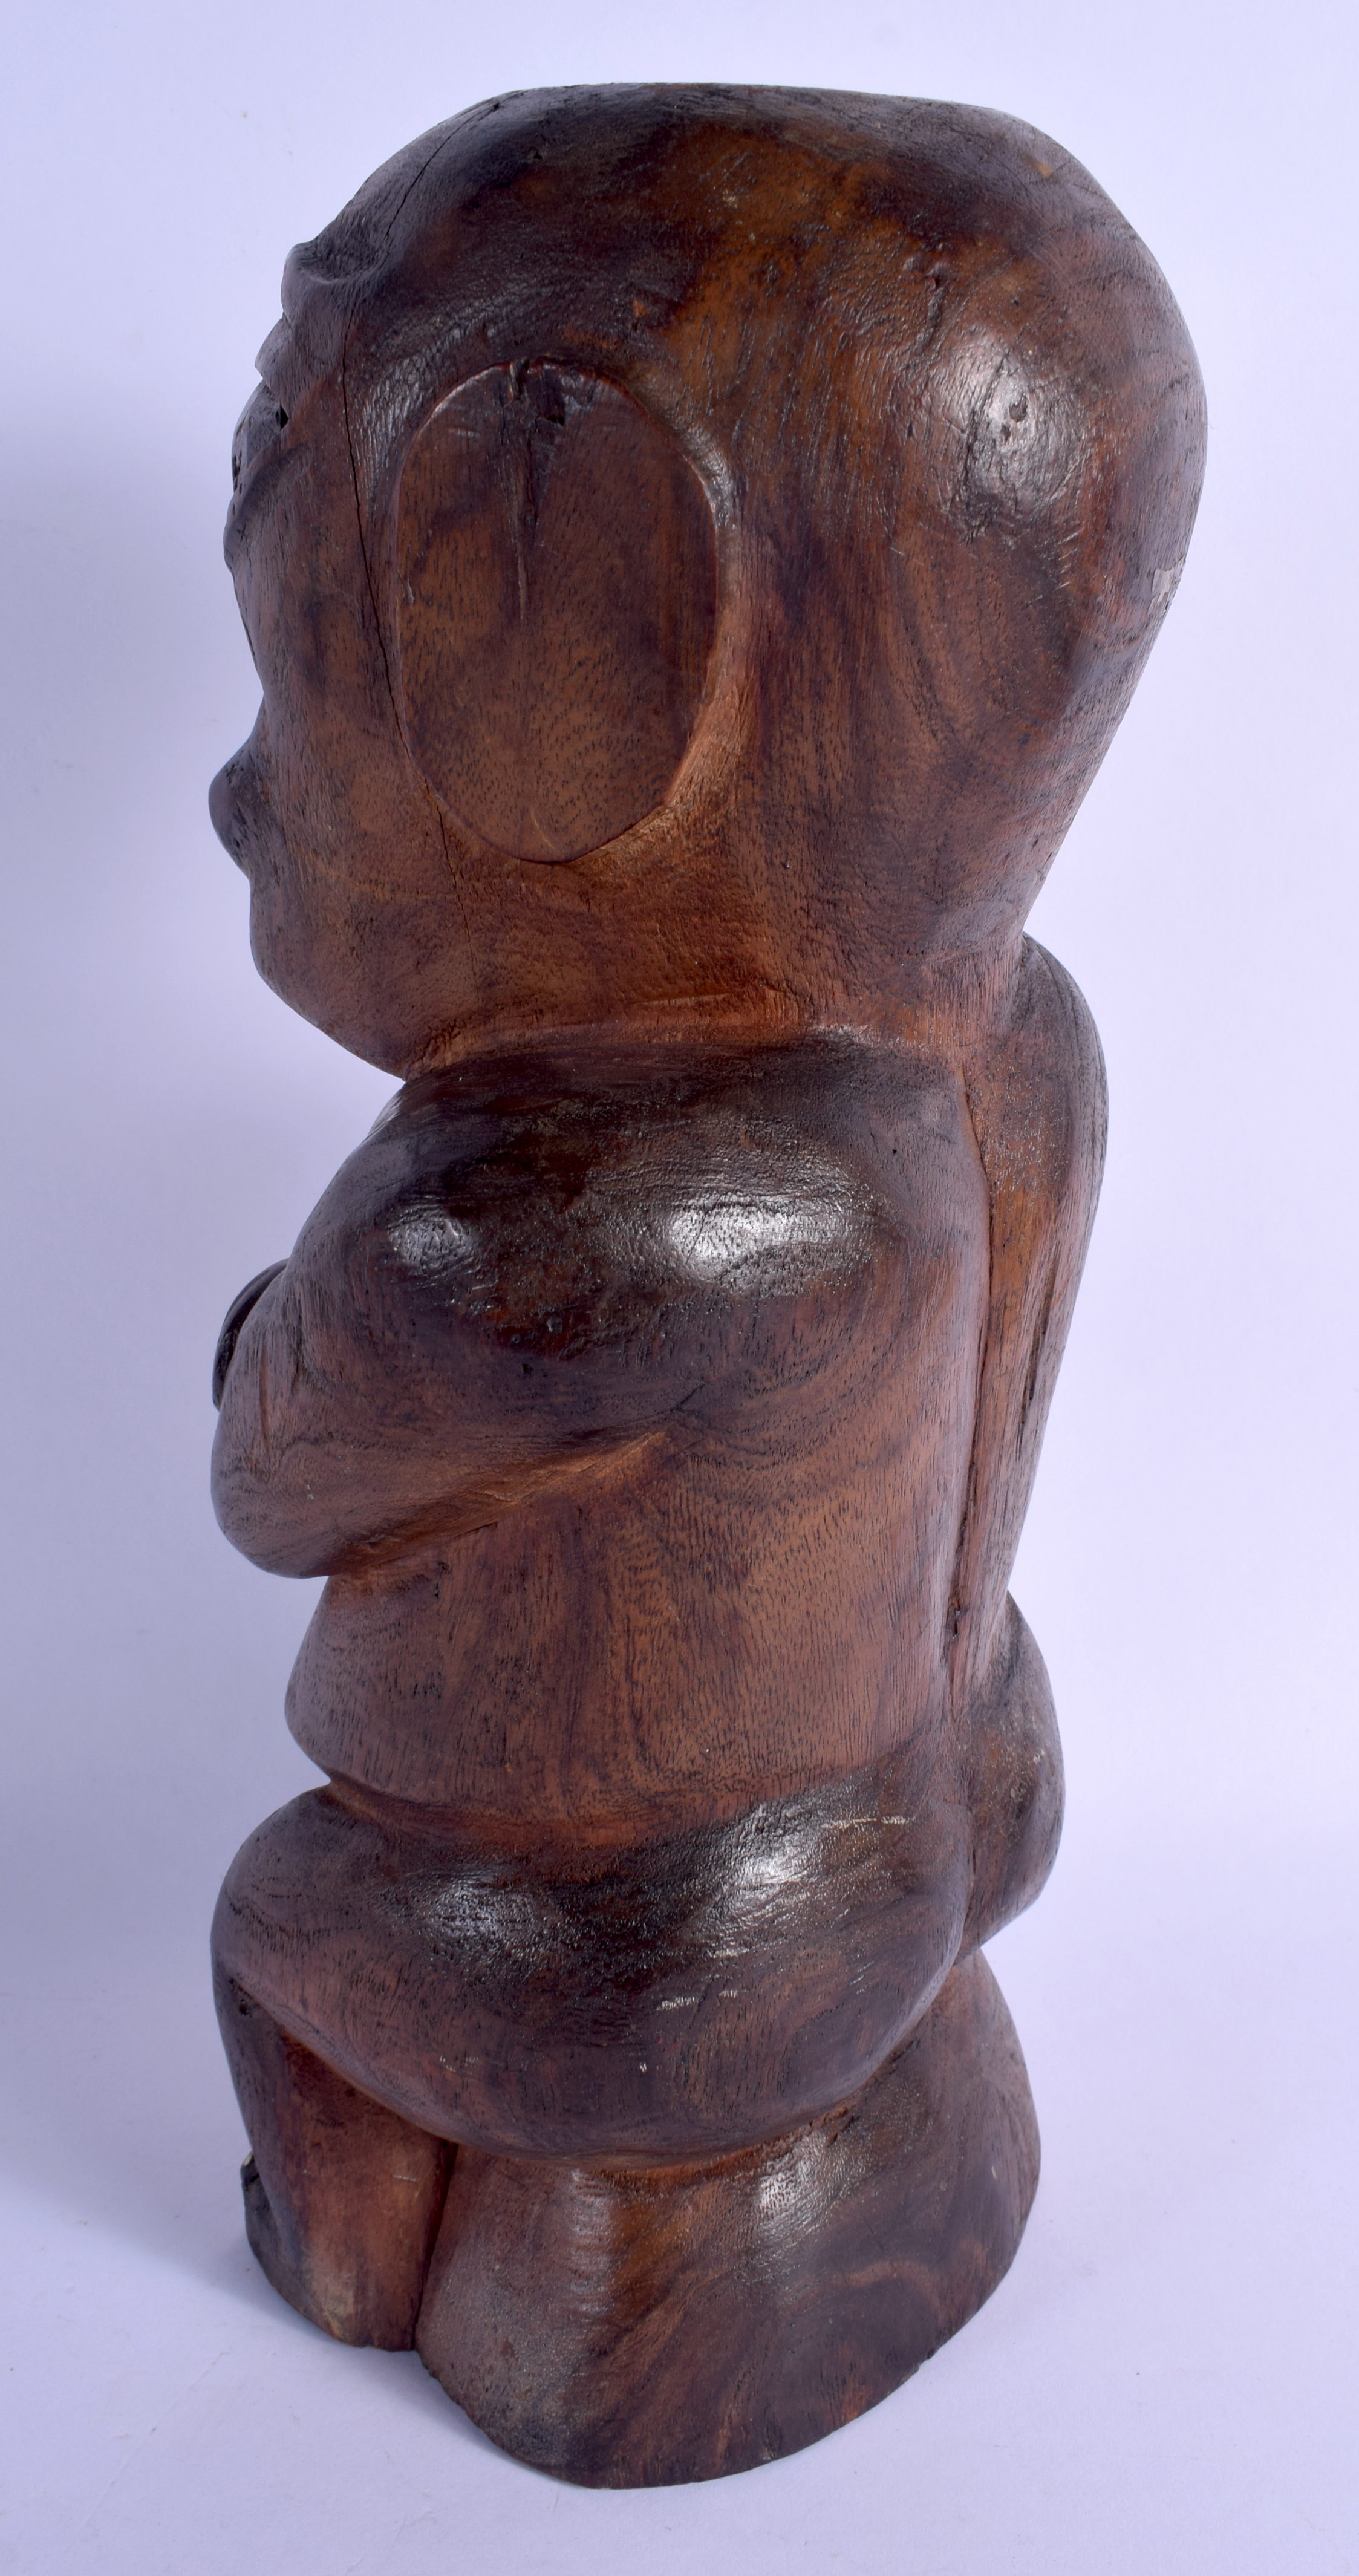 A SOUTH PACIFIC CARVED TRIBAL SEATED FIGURE possibly from Tahiti or Marquesas Islands. 33 cm high. - Image 2 of 4